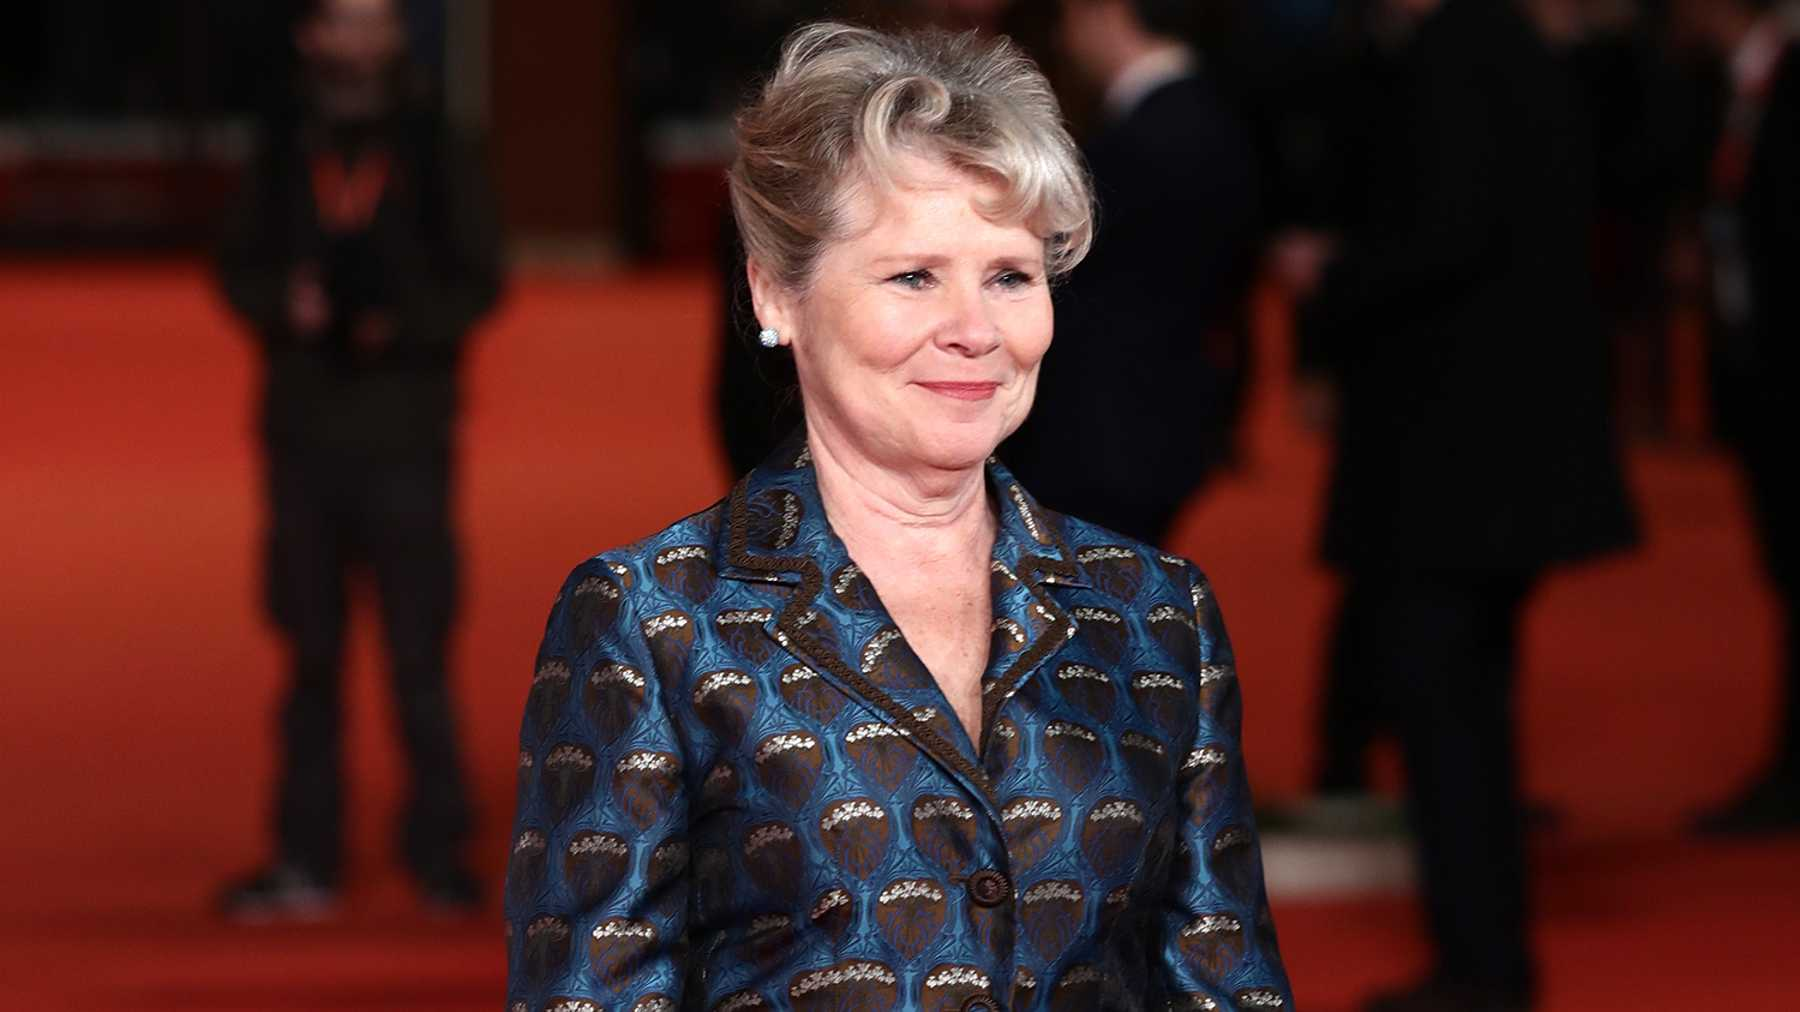 The Crown To End With Season 5 Imelda Staunton To Play The Queen Tv Empire